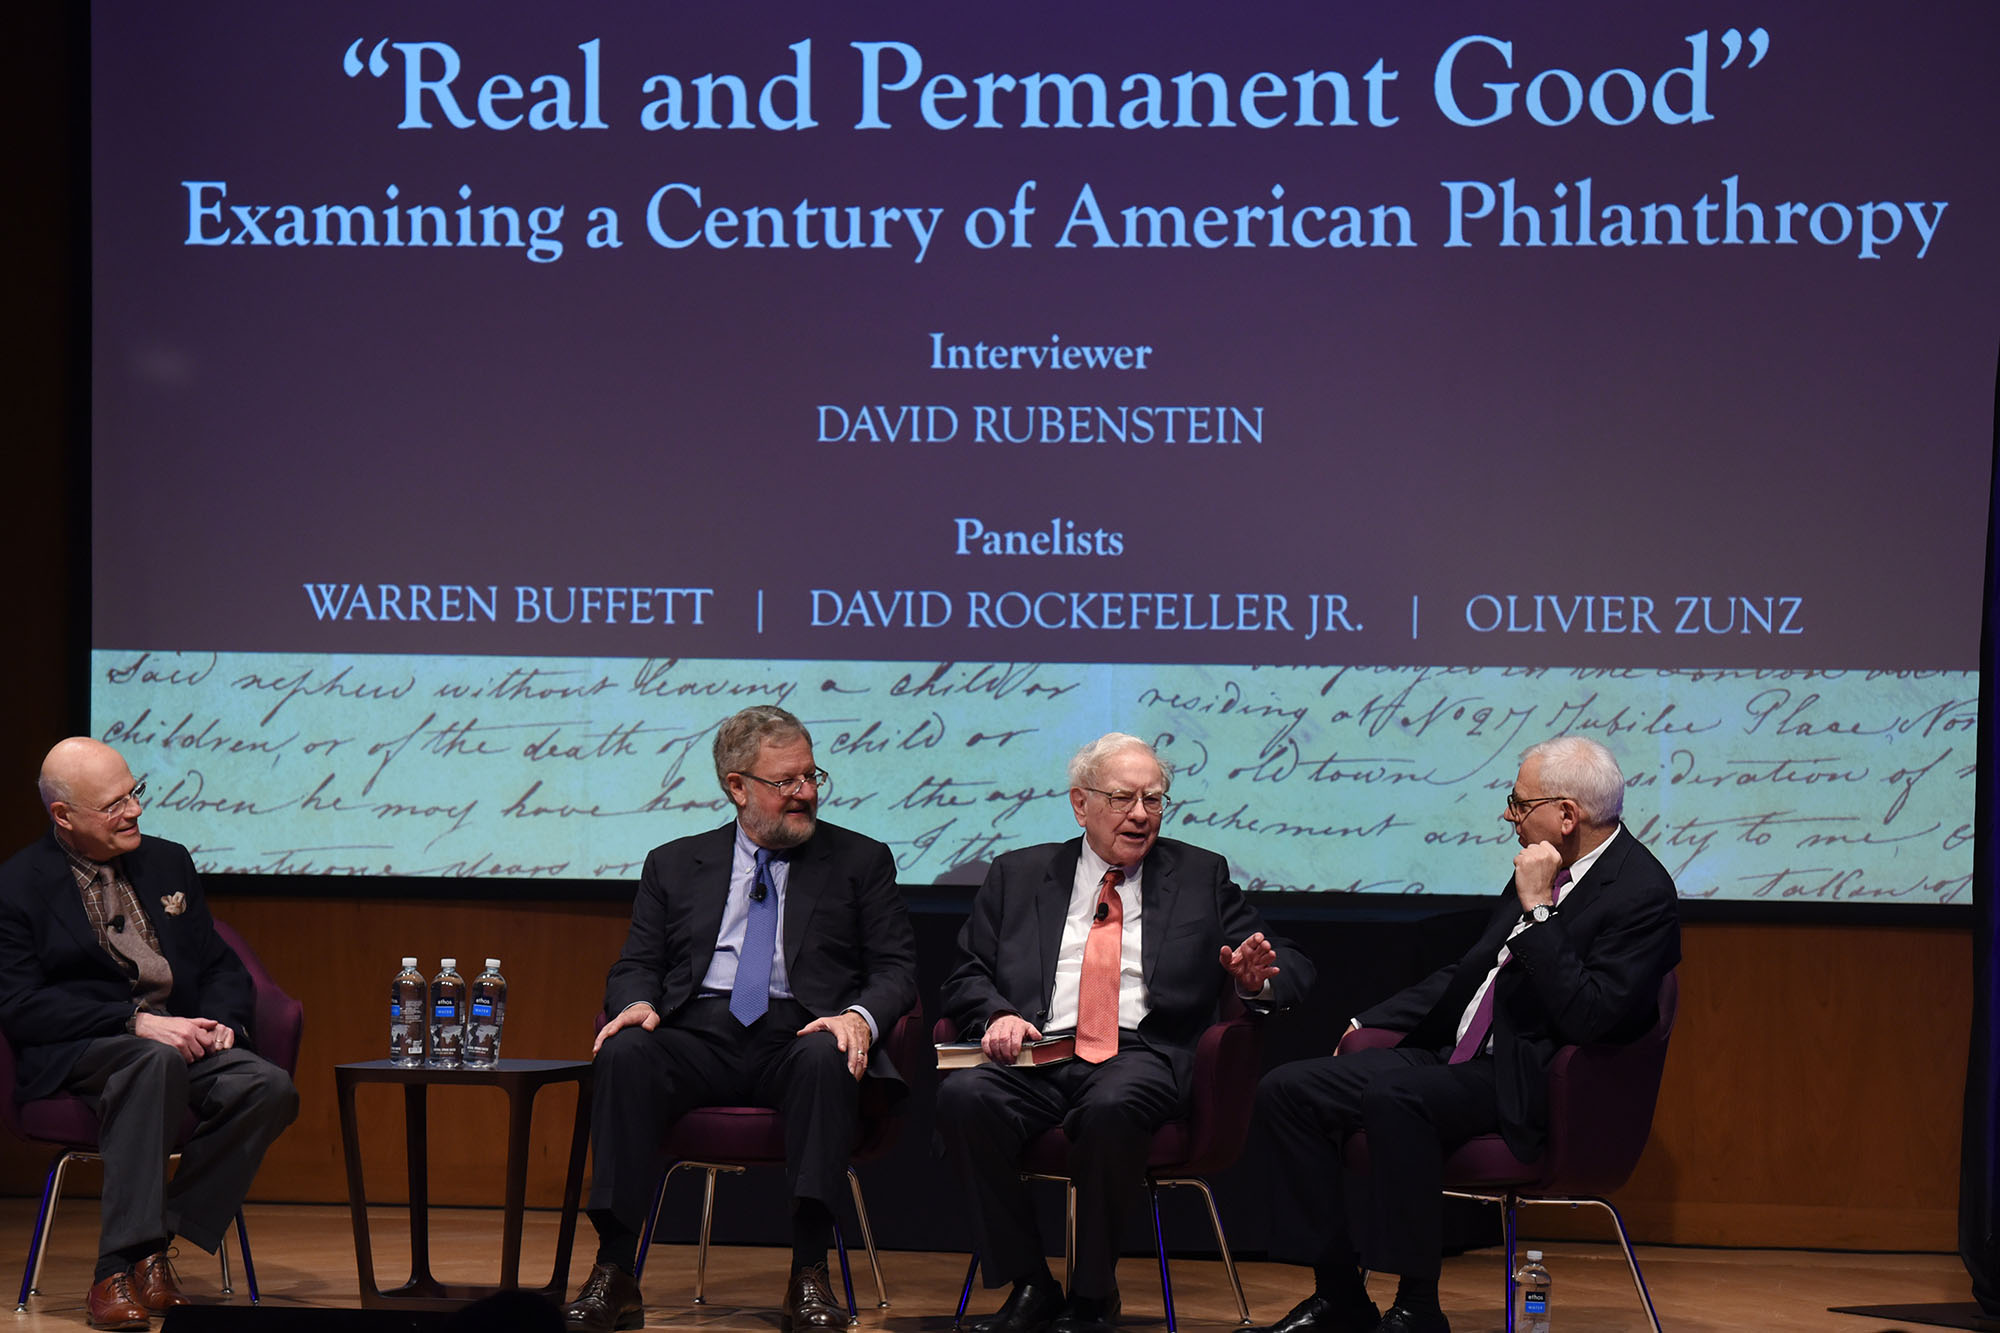 Olivier Zunz (left), a Commonwealth Professor in the Corcoran Department of History at the University of Virginia, philanthropist David Rockefeller Jr. (second from left), Warren Buffet (center), chairman of the investment house Berkshire Hathaway, and ph